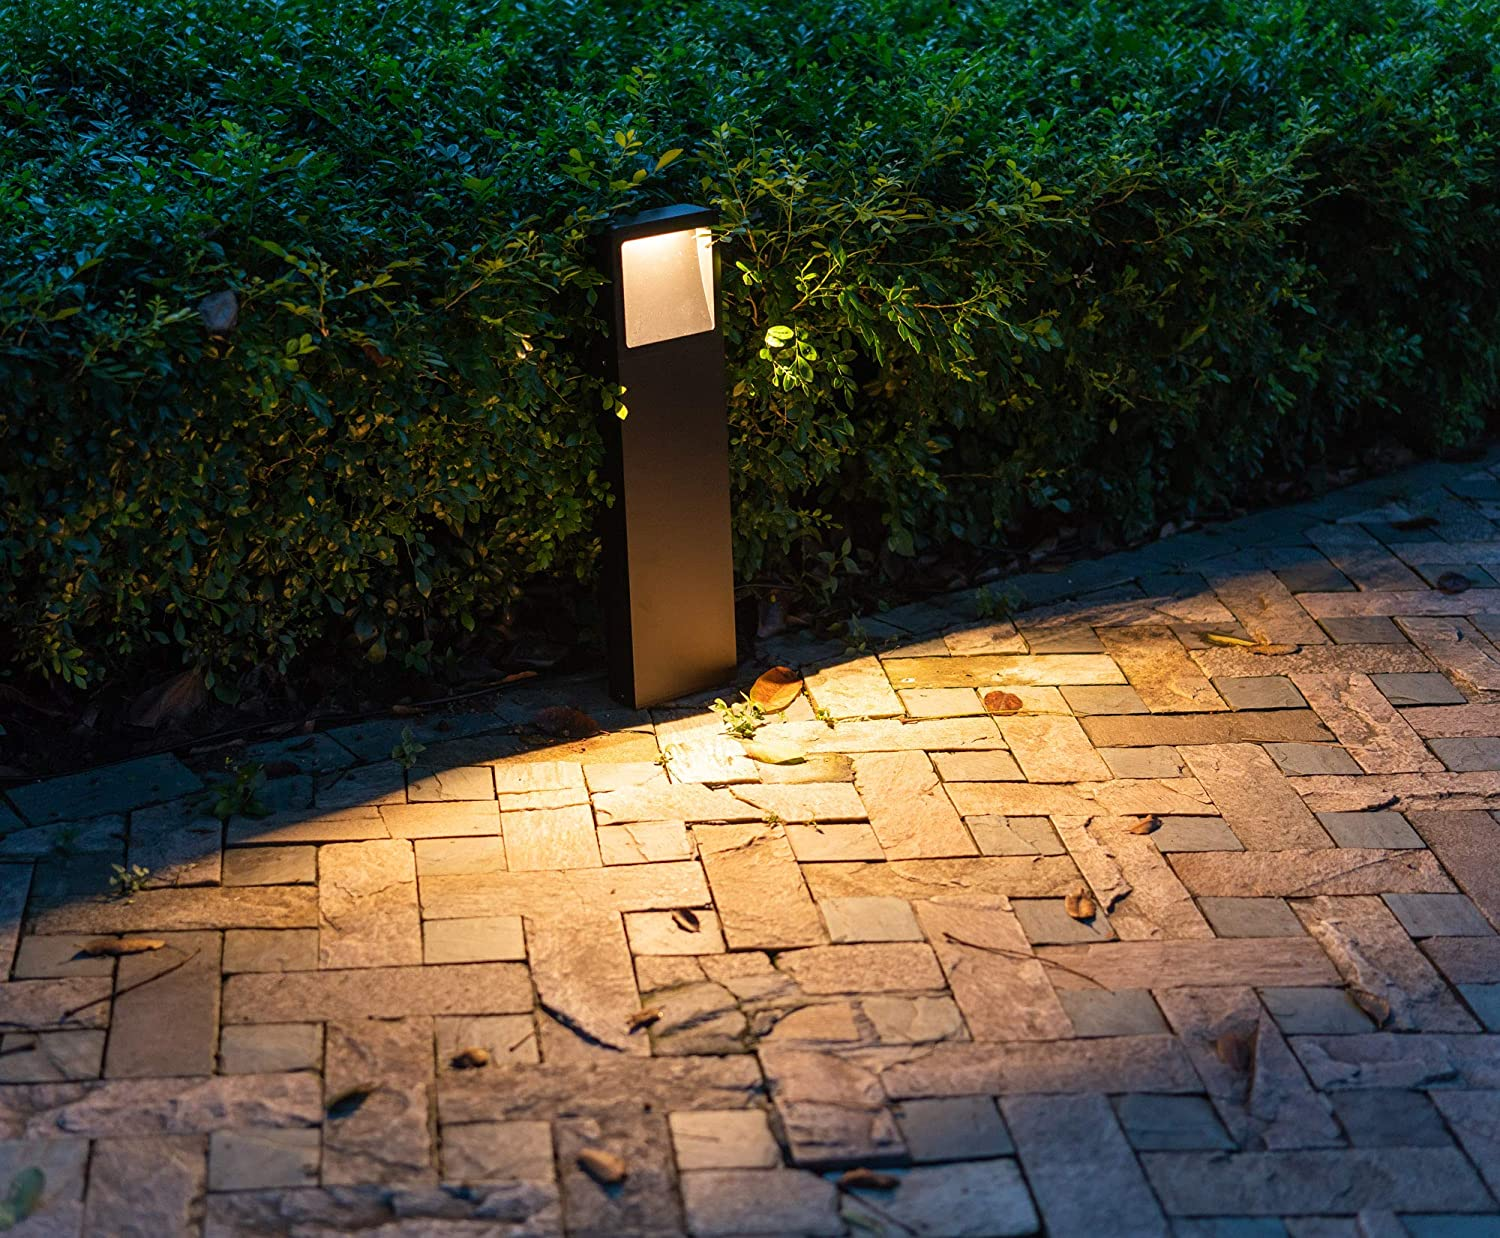 CNBRIGHTER LED Landscape Path Lights-Beveled Emitting,10 Watts, 2 ft/ 60cm Height,Waterproof Aluminum Outdoor Gardern Accent Pathway and Spread Area Lighting,Warm White 3000K